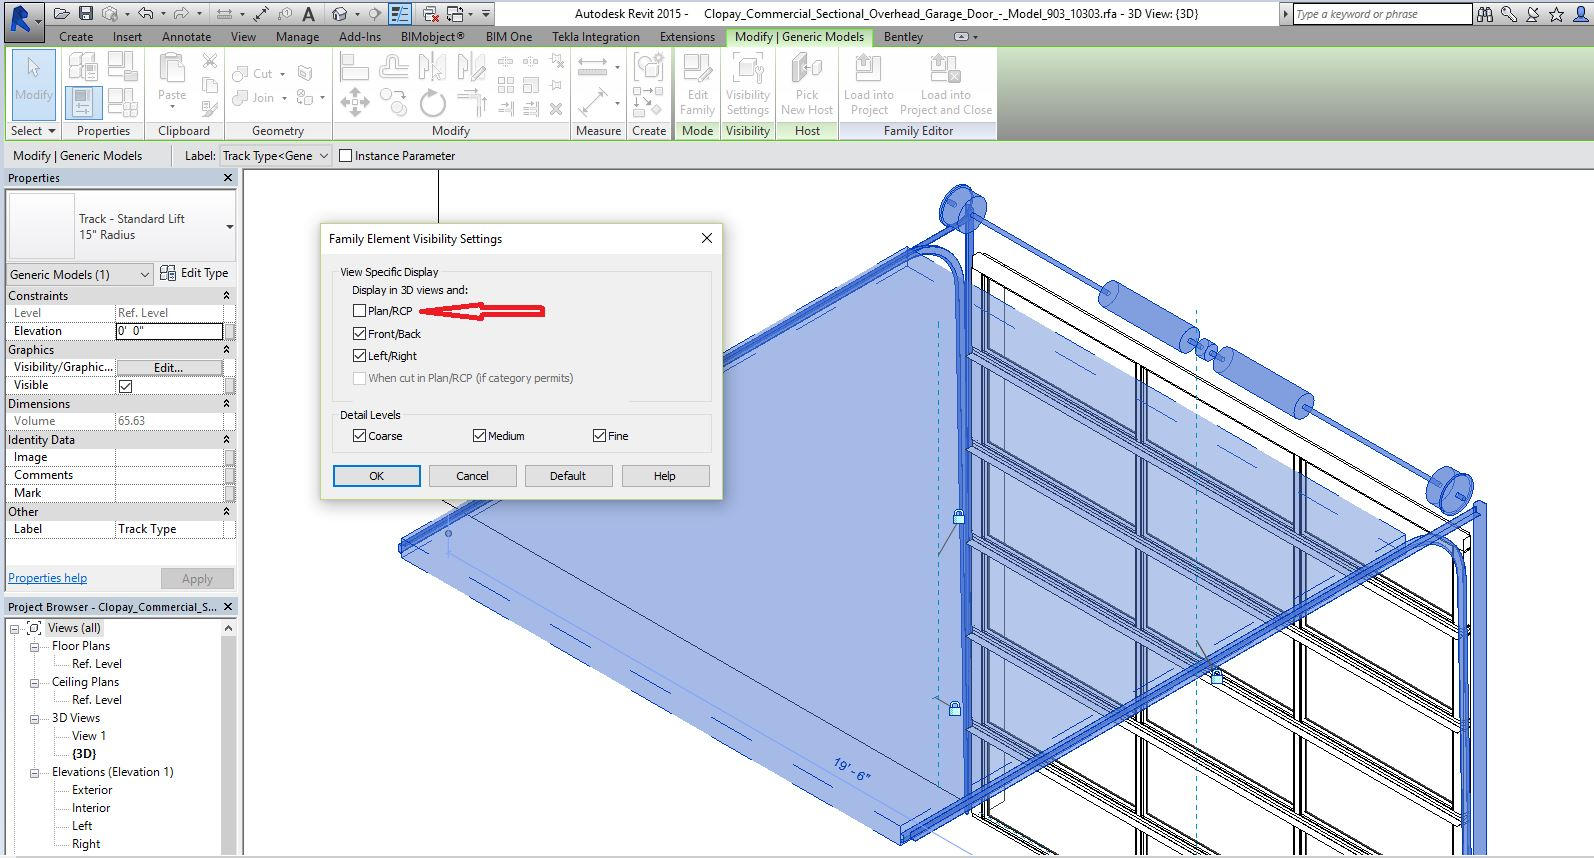 Good Autodesk Revit Garage Door Fluidelectric